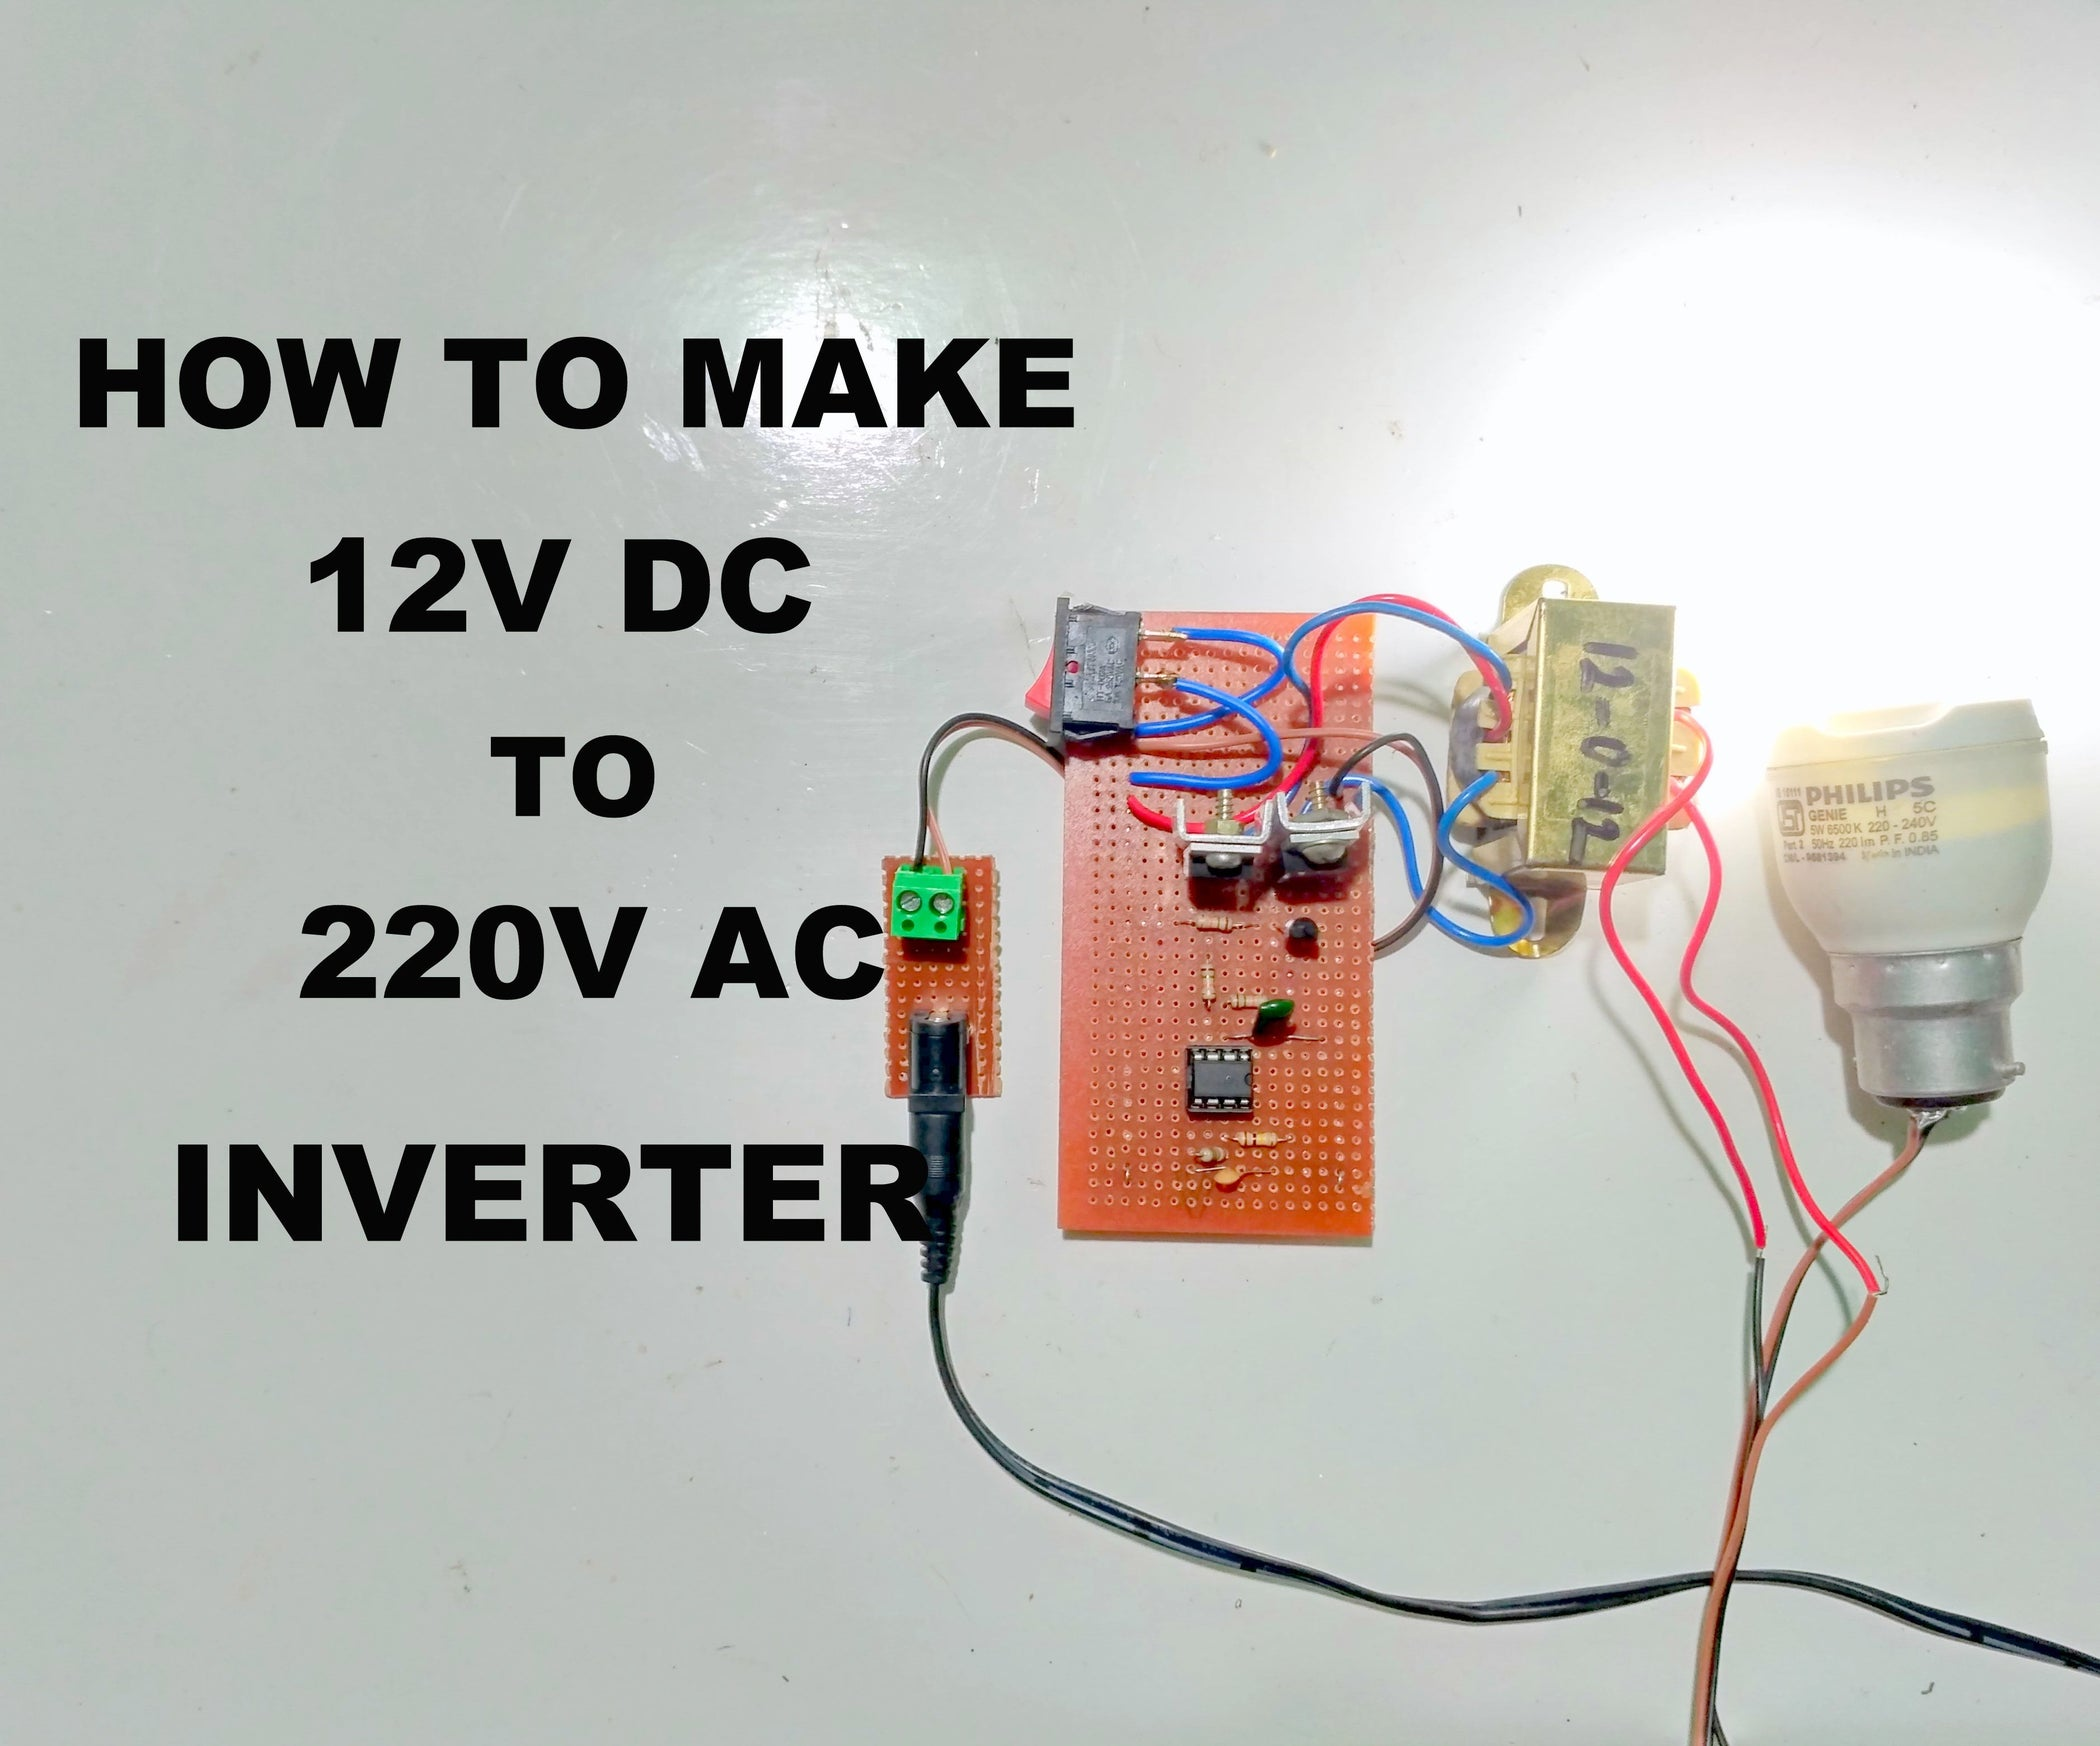 How To Make 12v Dc 220v Ac Inverter 4 Steps With Pictures Design Of Digital Clock Circuit In The 50 Hz 220